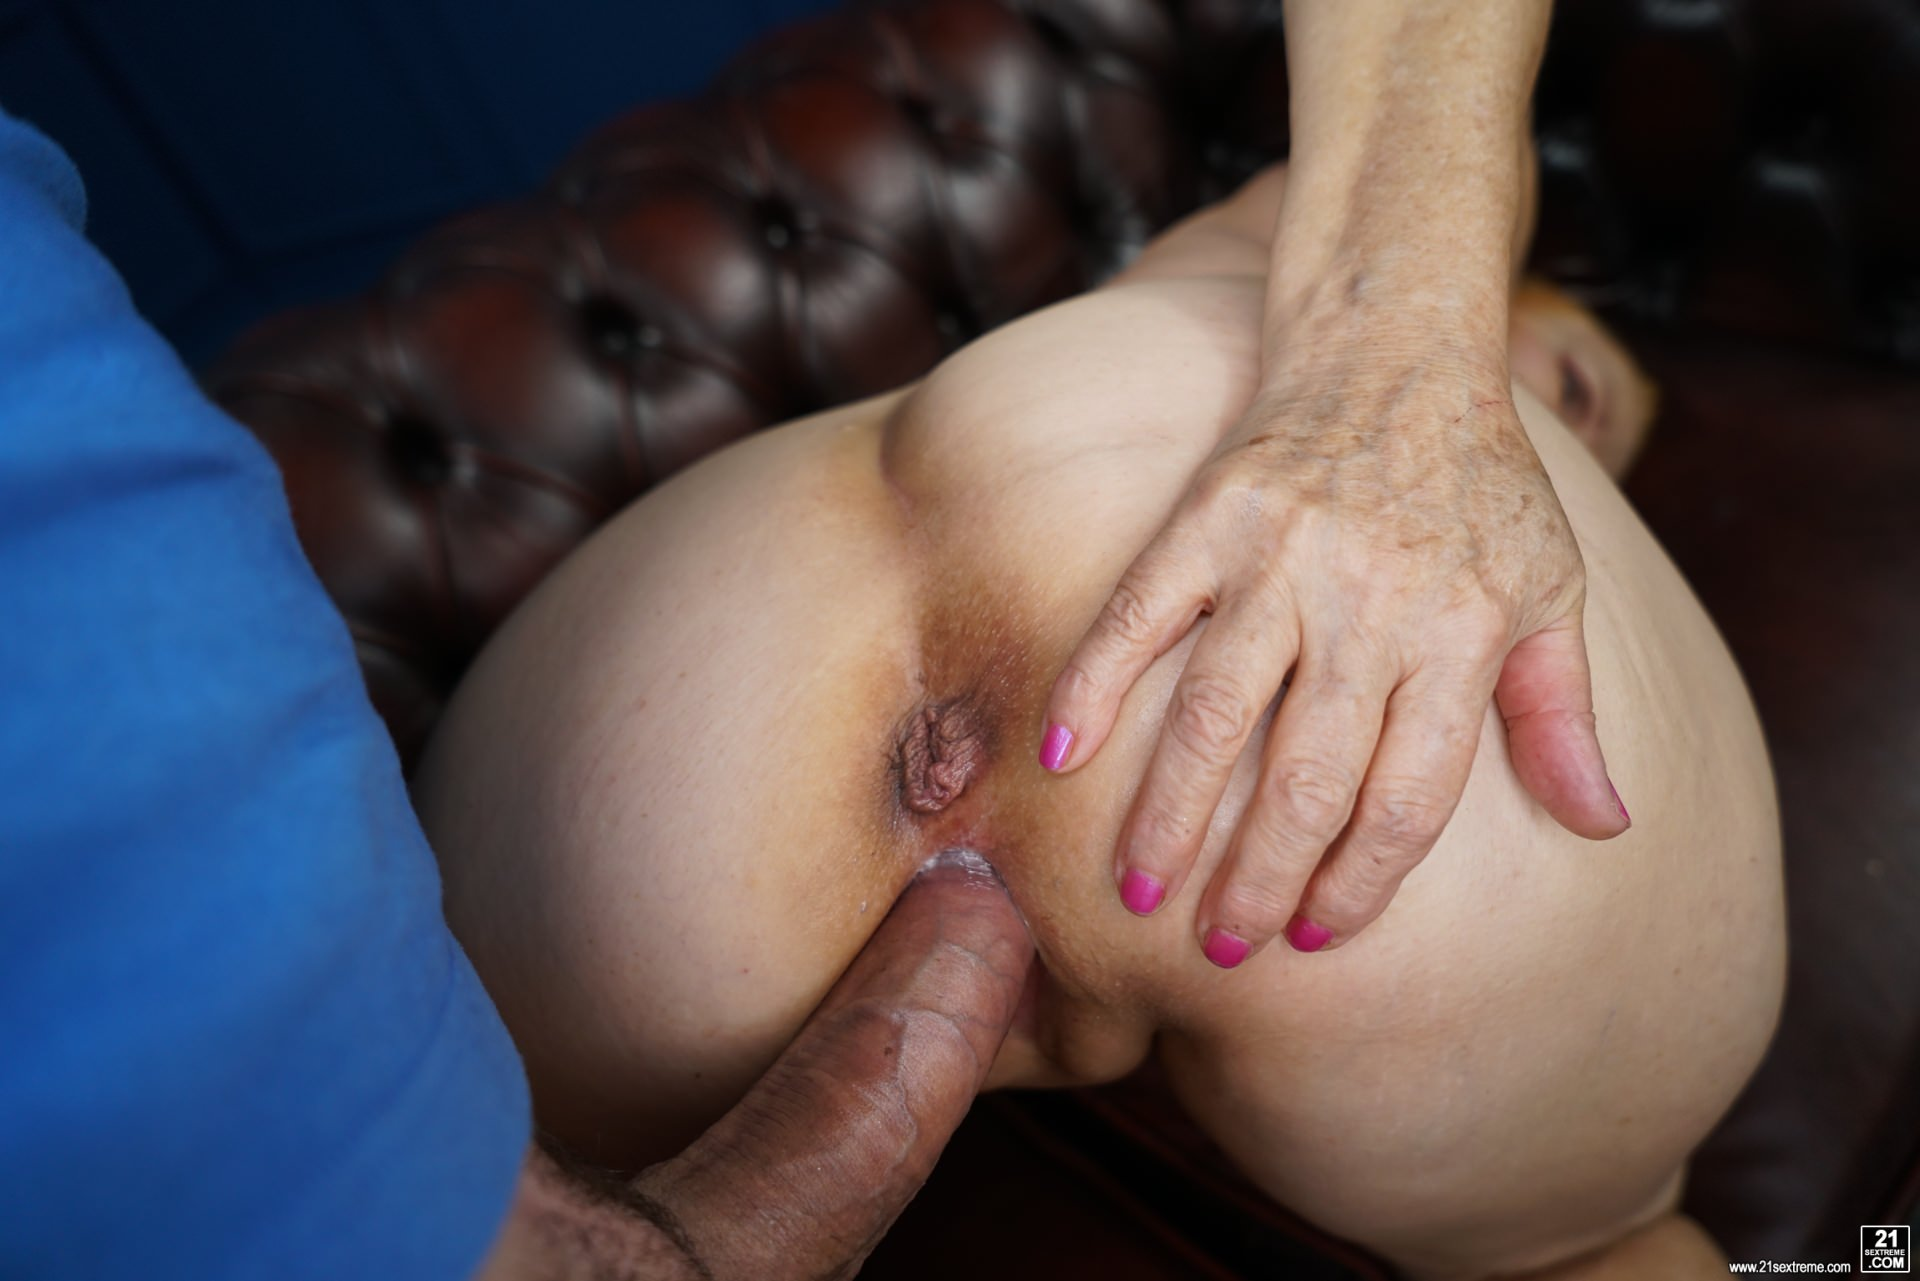 21Sextury 'Happiness Online' starring Marianne (Photo 84)